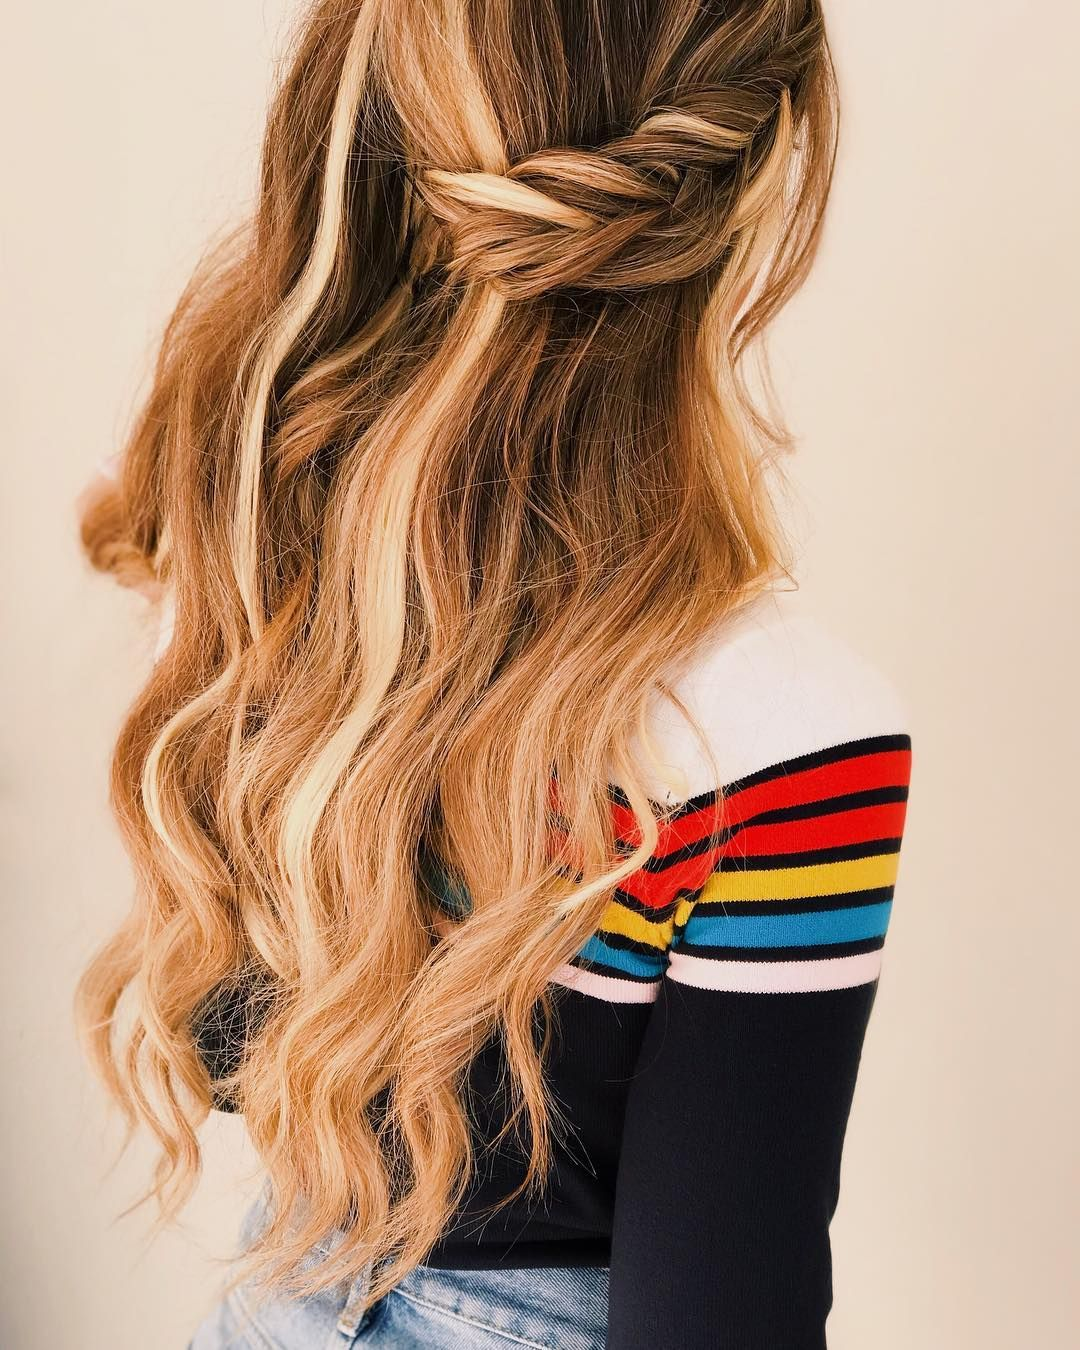 A Little Hair Inspo For Your Monday Morning☀️ | Hairstyle